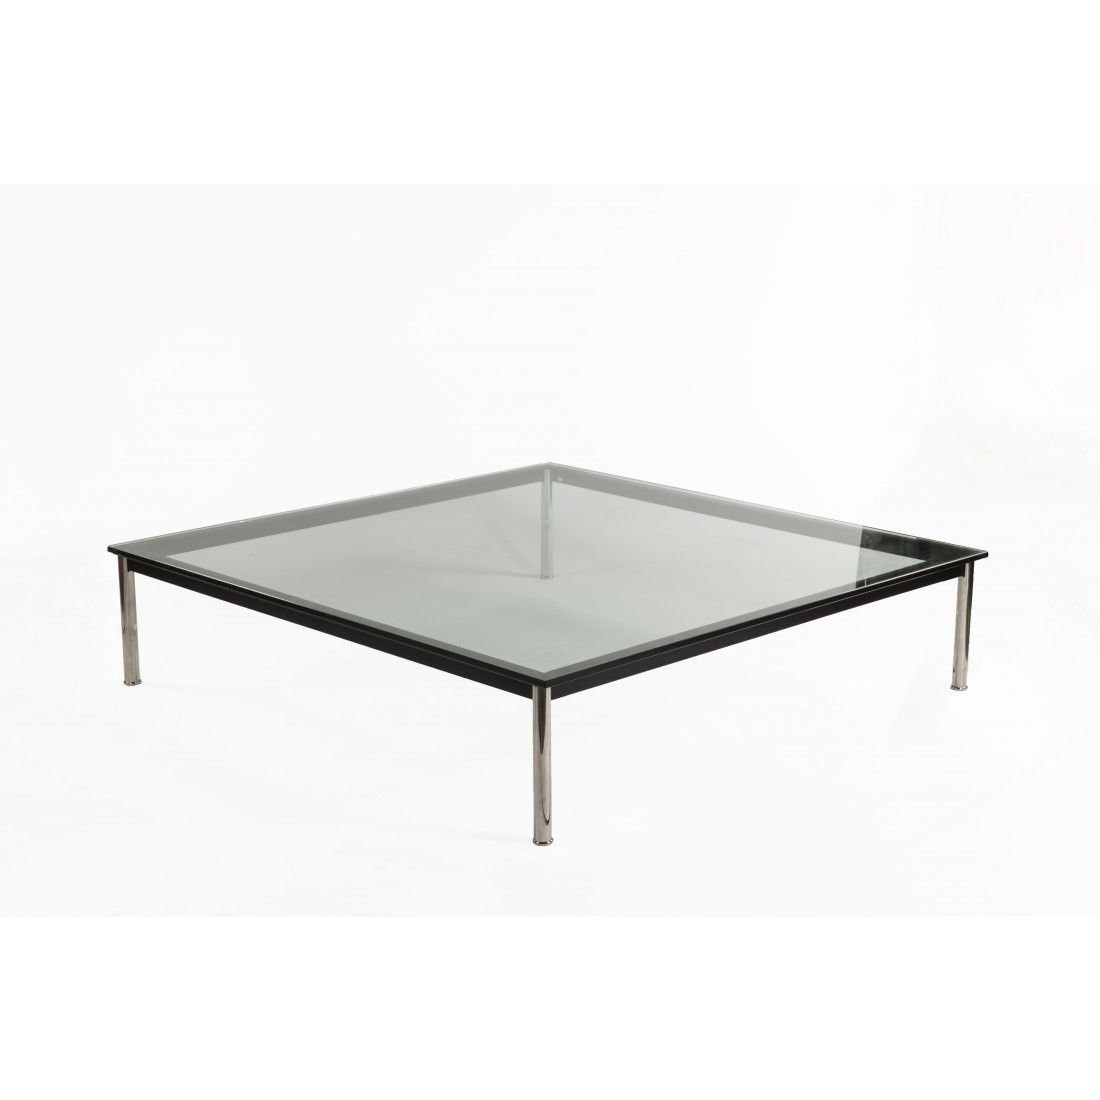 Mid Century Modern Reproduction Square Low Coffee Table Large Inspired By Le Corbusier